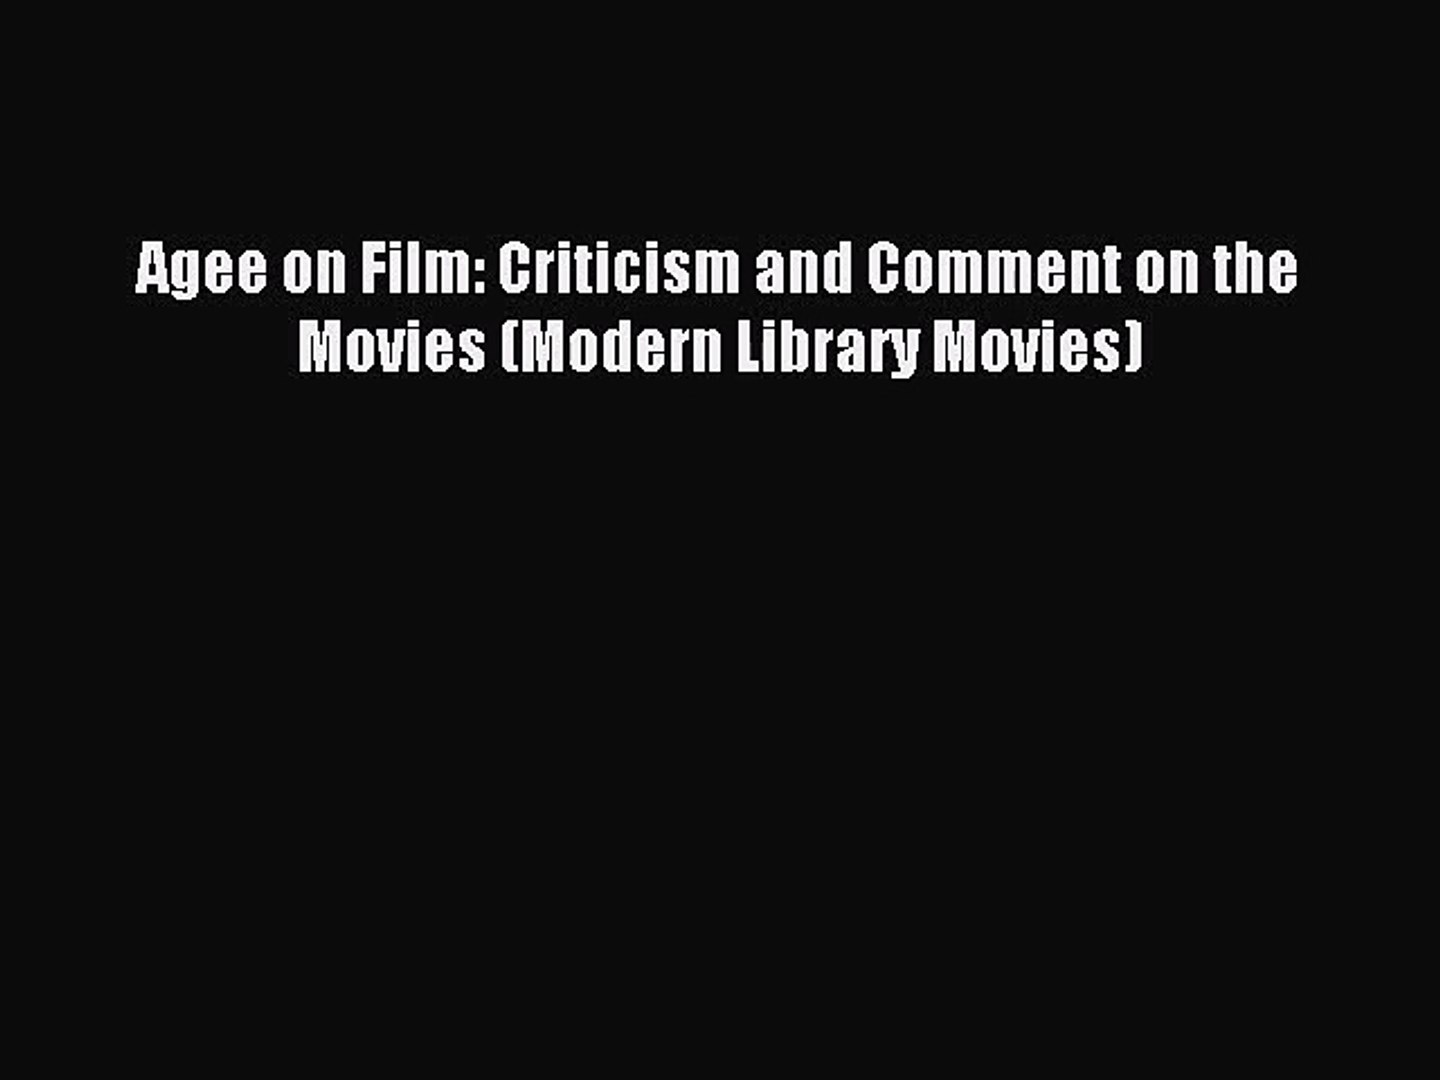 Download Agee on Film: Criticism and Comment on the Movies (Modern Library Movies) PDF Free